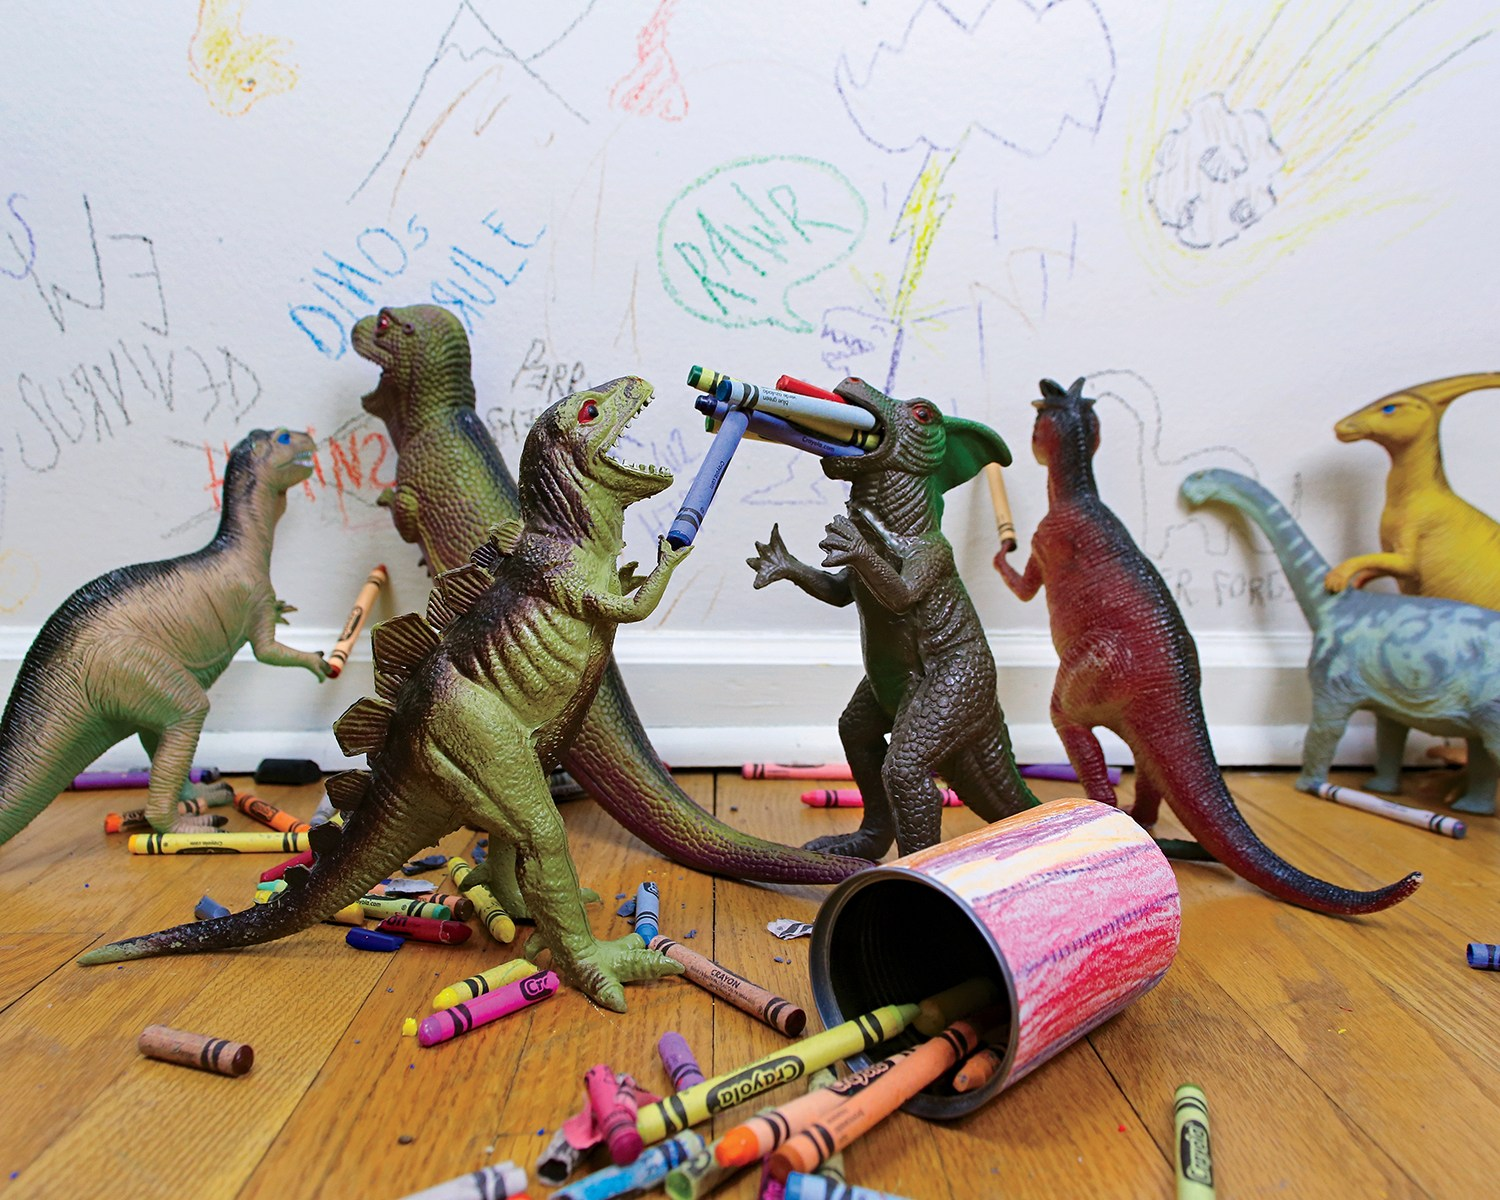 Dinovember family brings story to life with 'What the Dinosaurs Did Last Night'